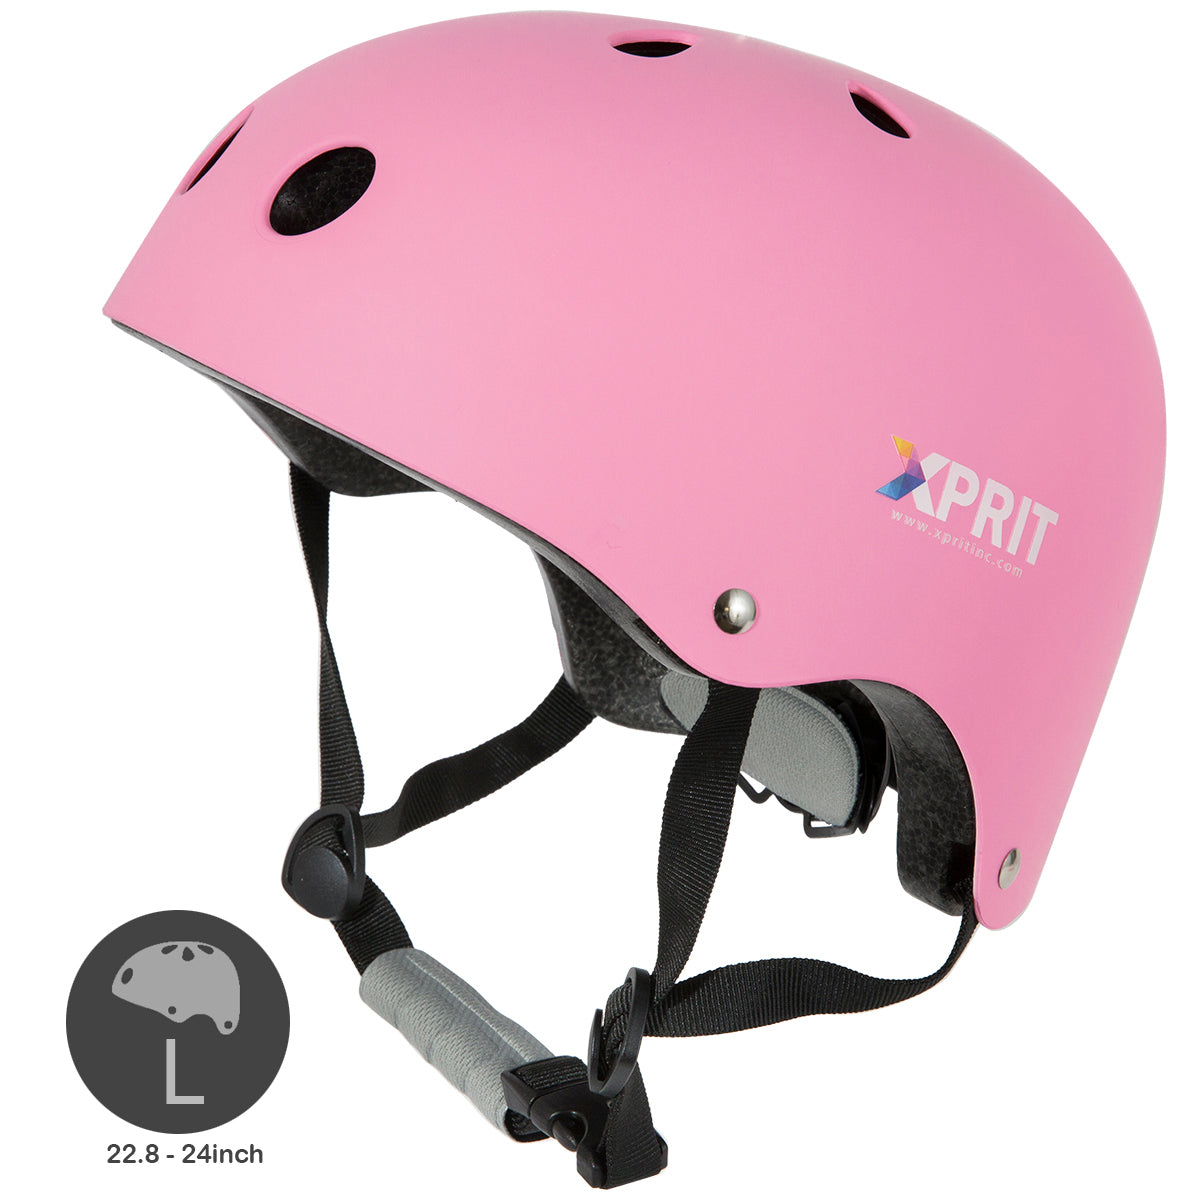 XPRIT Kids/Adults Protection Helmet For Scooter, Hoverboard, Skateboard and Bicycle. Pink Large